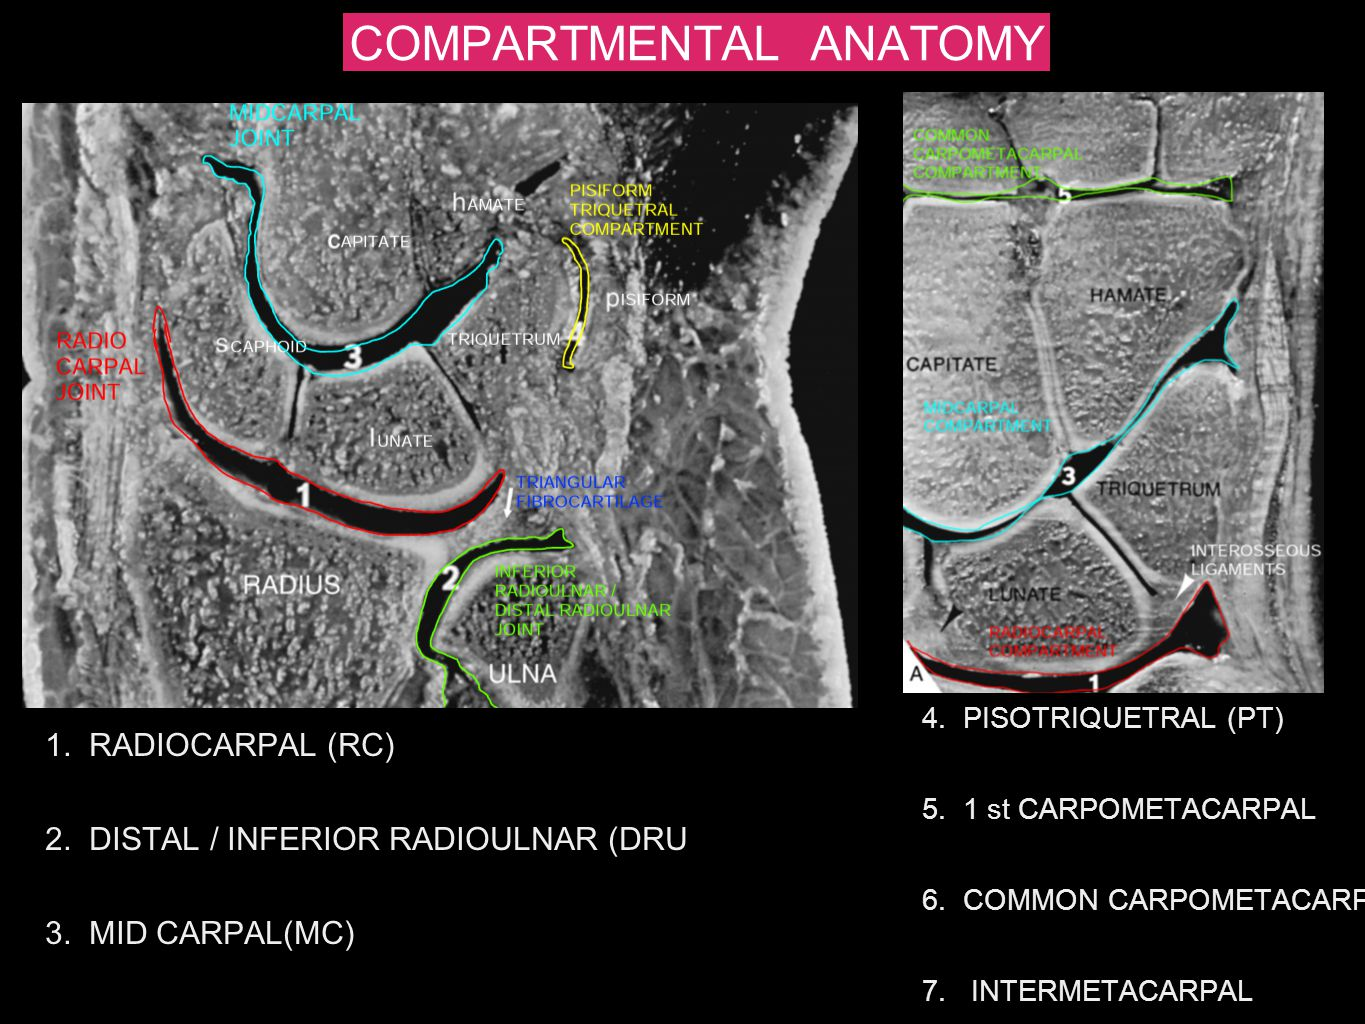 COMPARTMENTAL ANATOMY